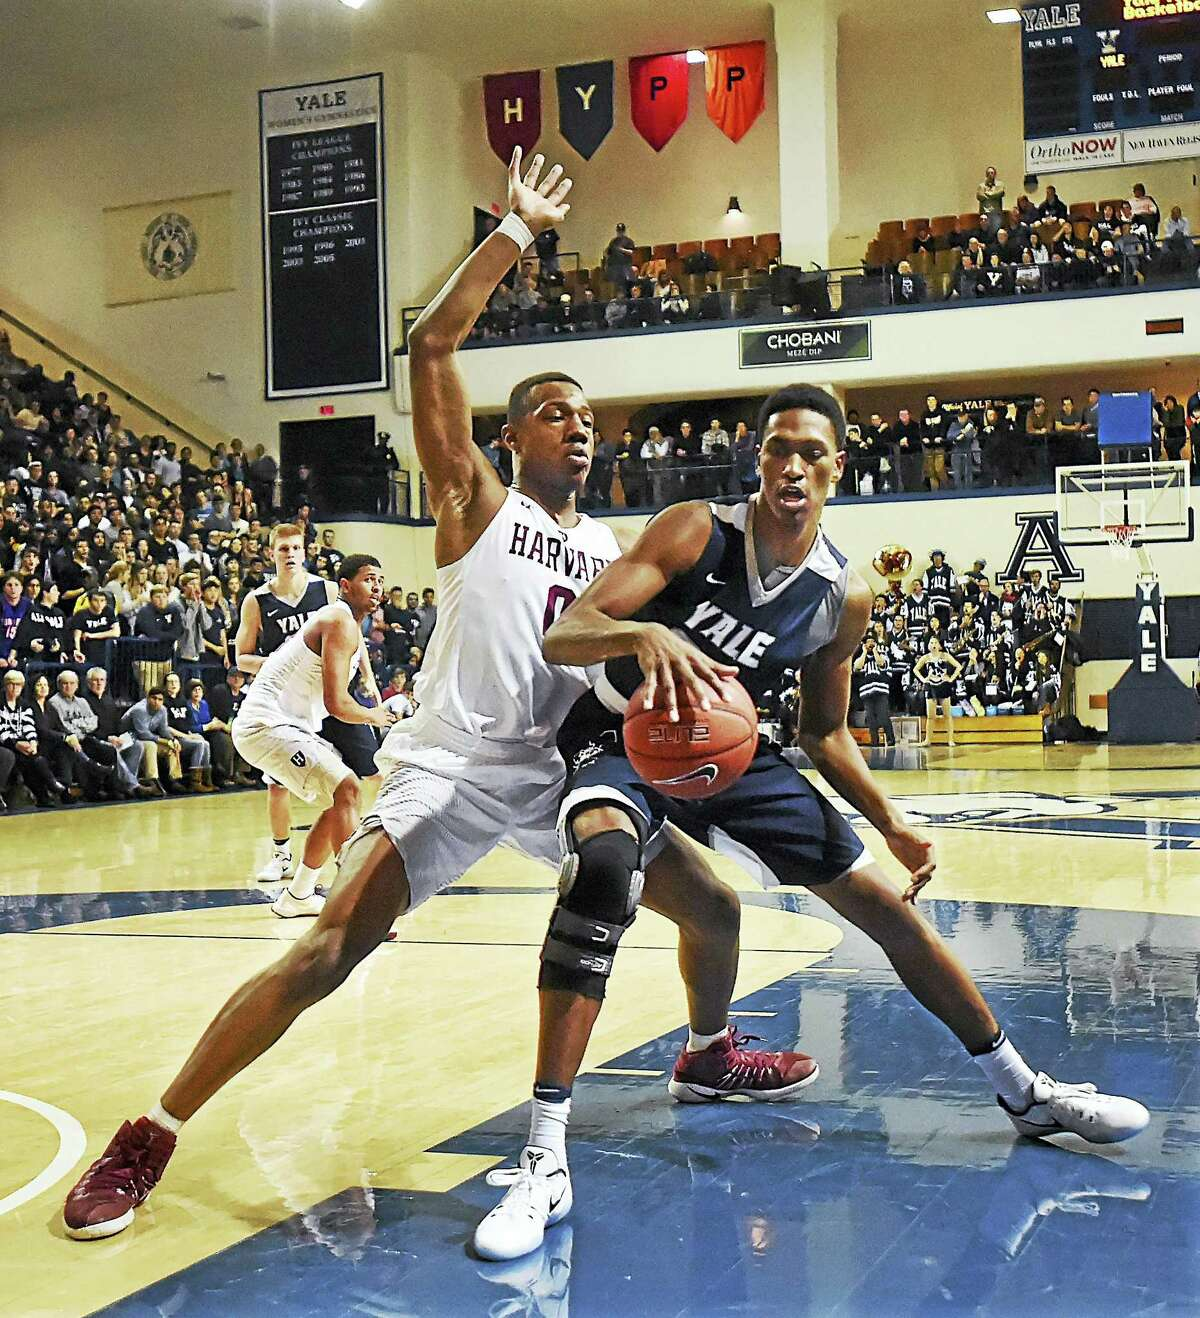 Yale's Lee Amphitheater will be the site of the 2019 Ivy League men's and women's basketball tournaments.